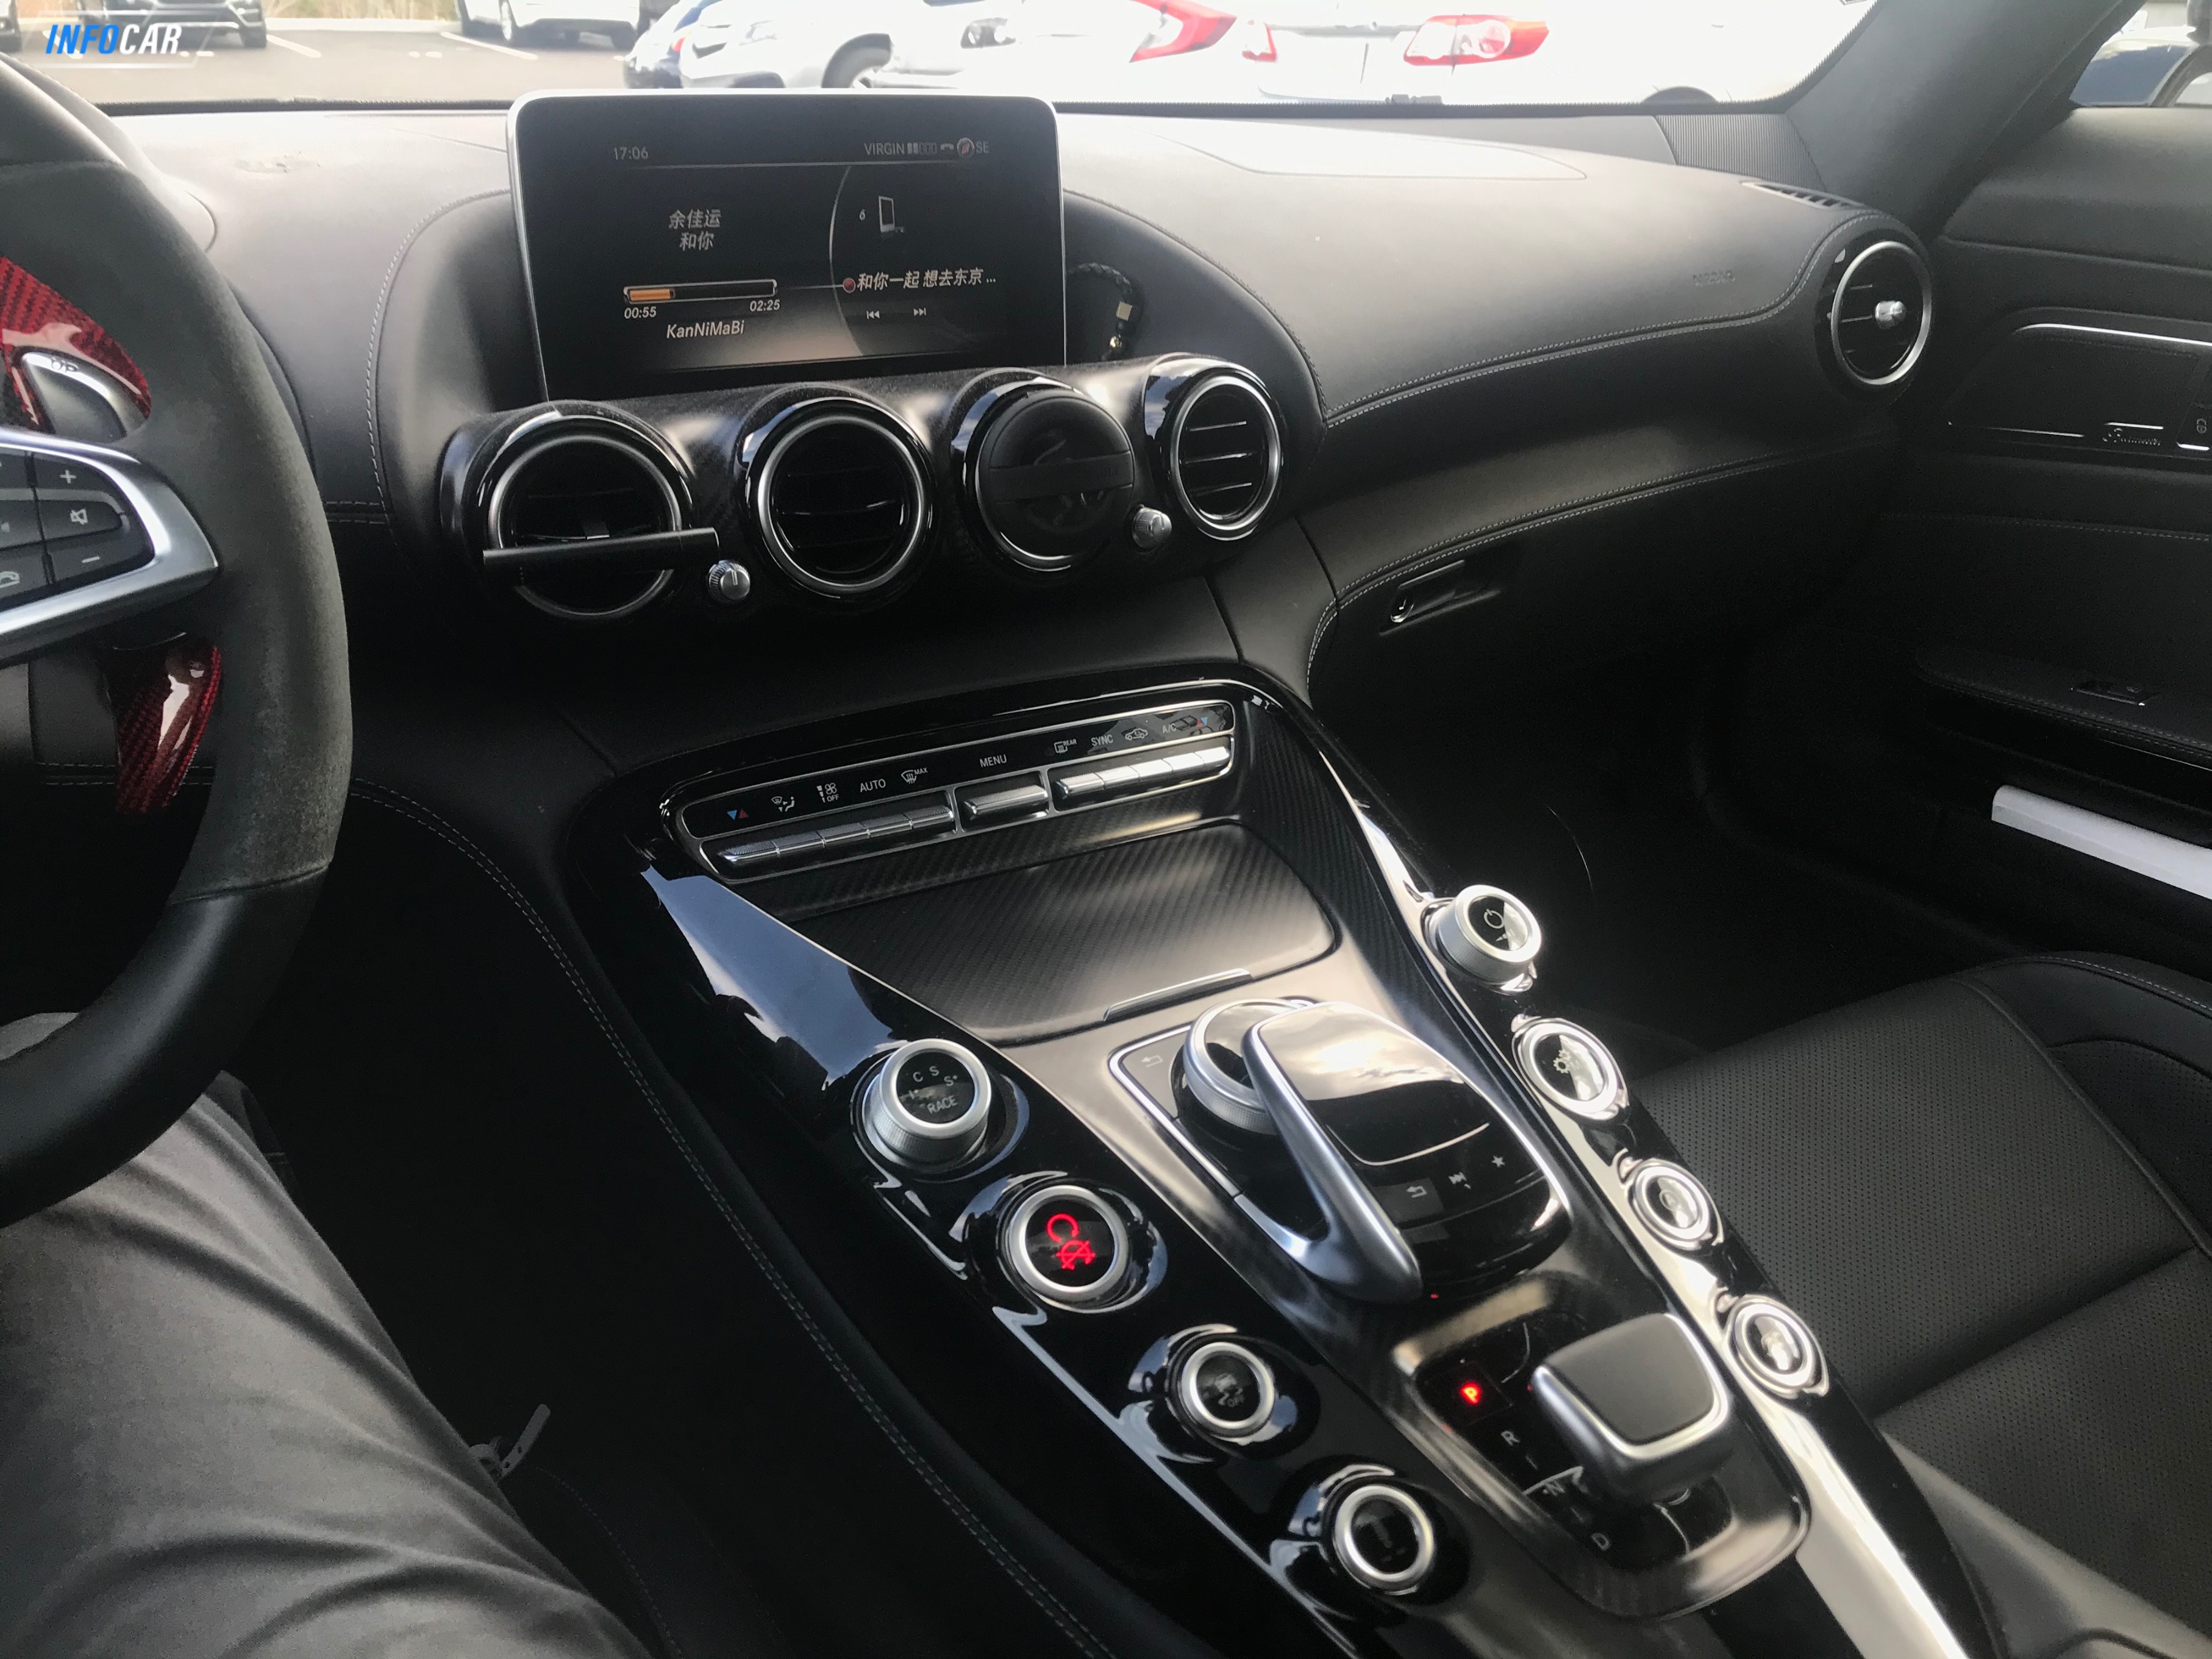 2018 Mercedes-Benz AMG GT AMG GTC - INFOCAR - Toronto's Most Comprehensive New and Used Auto Trading Platform